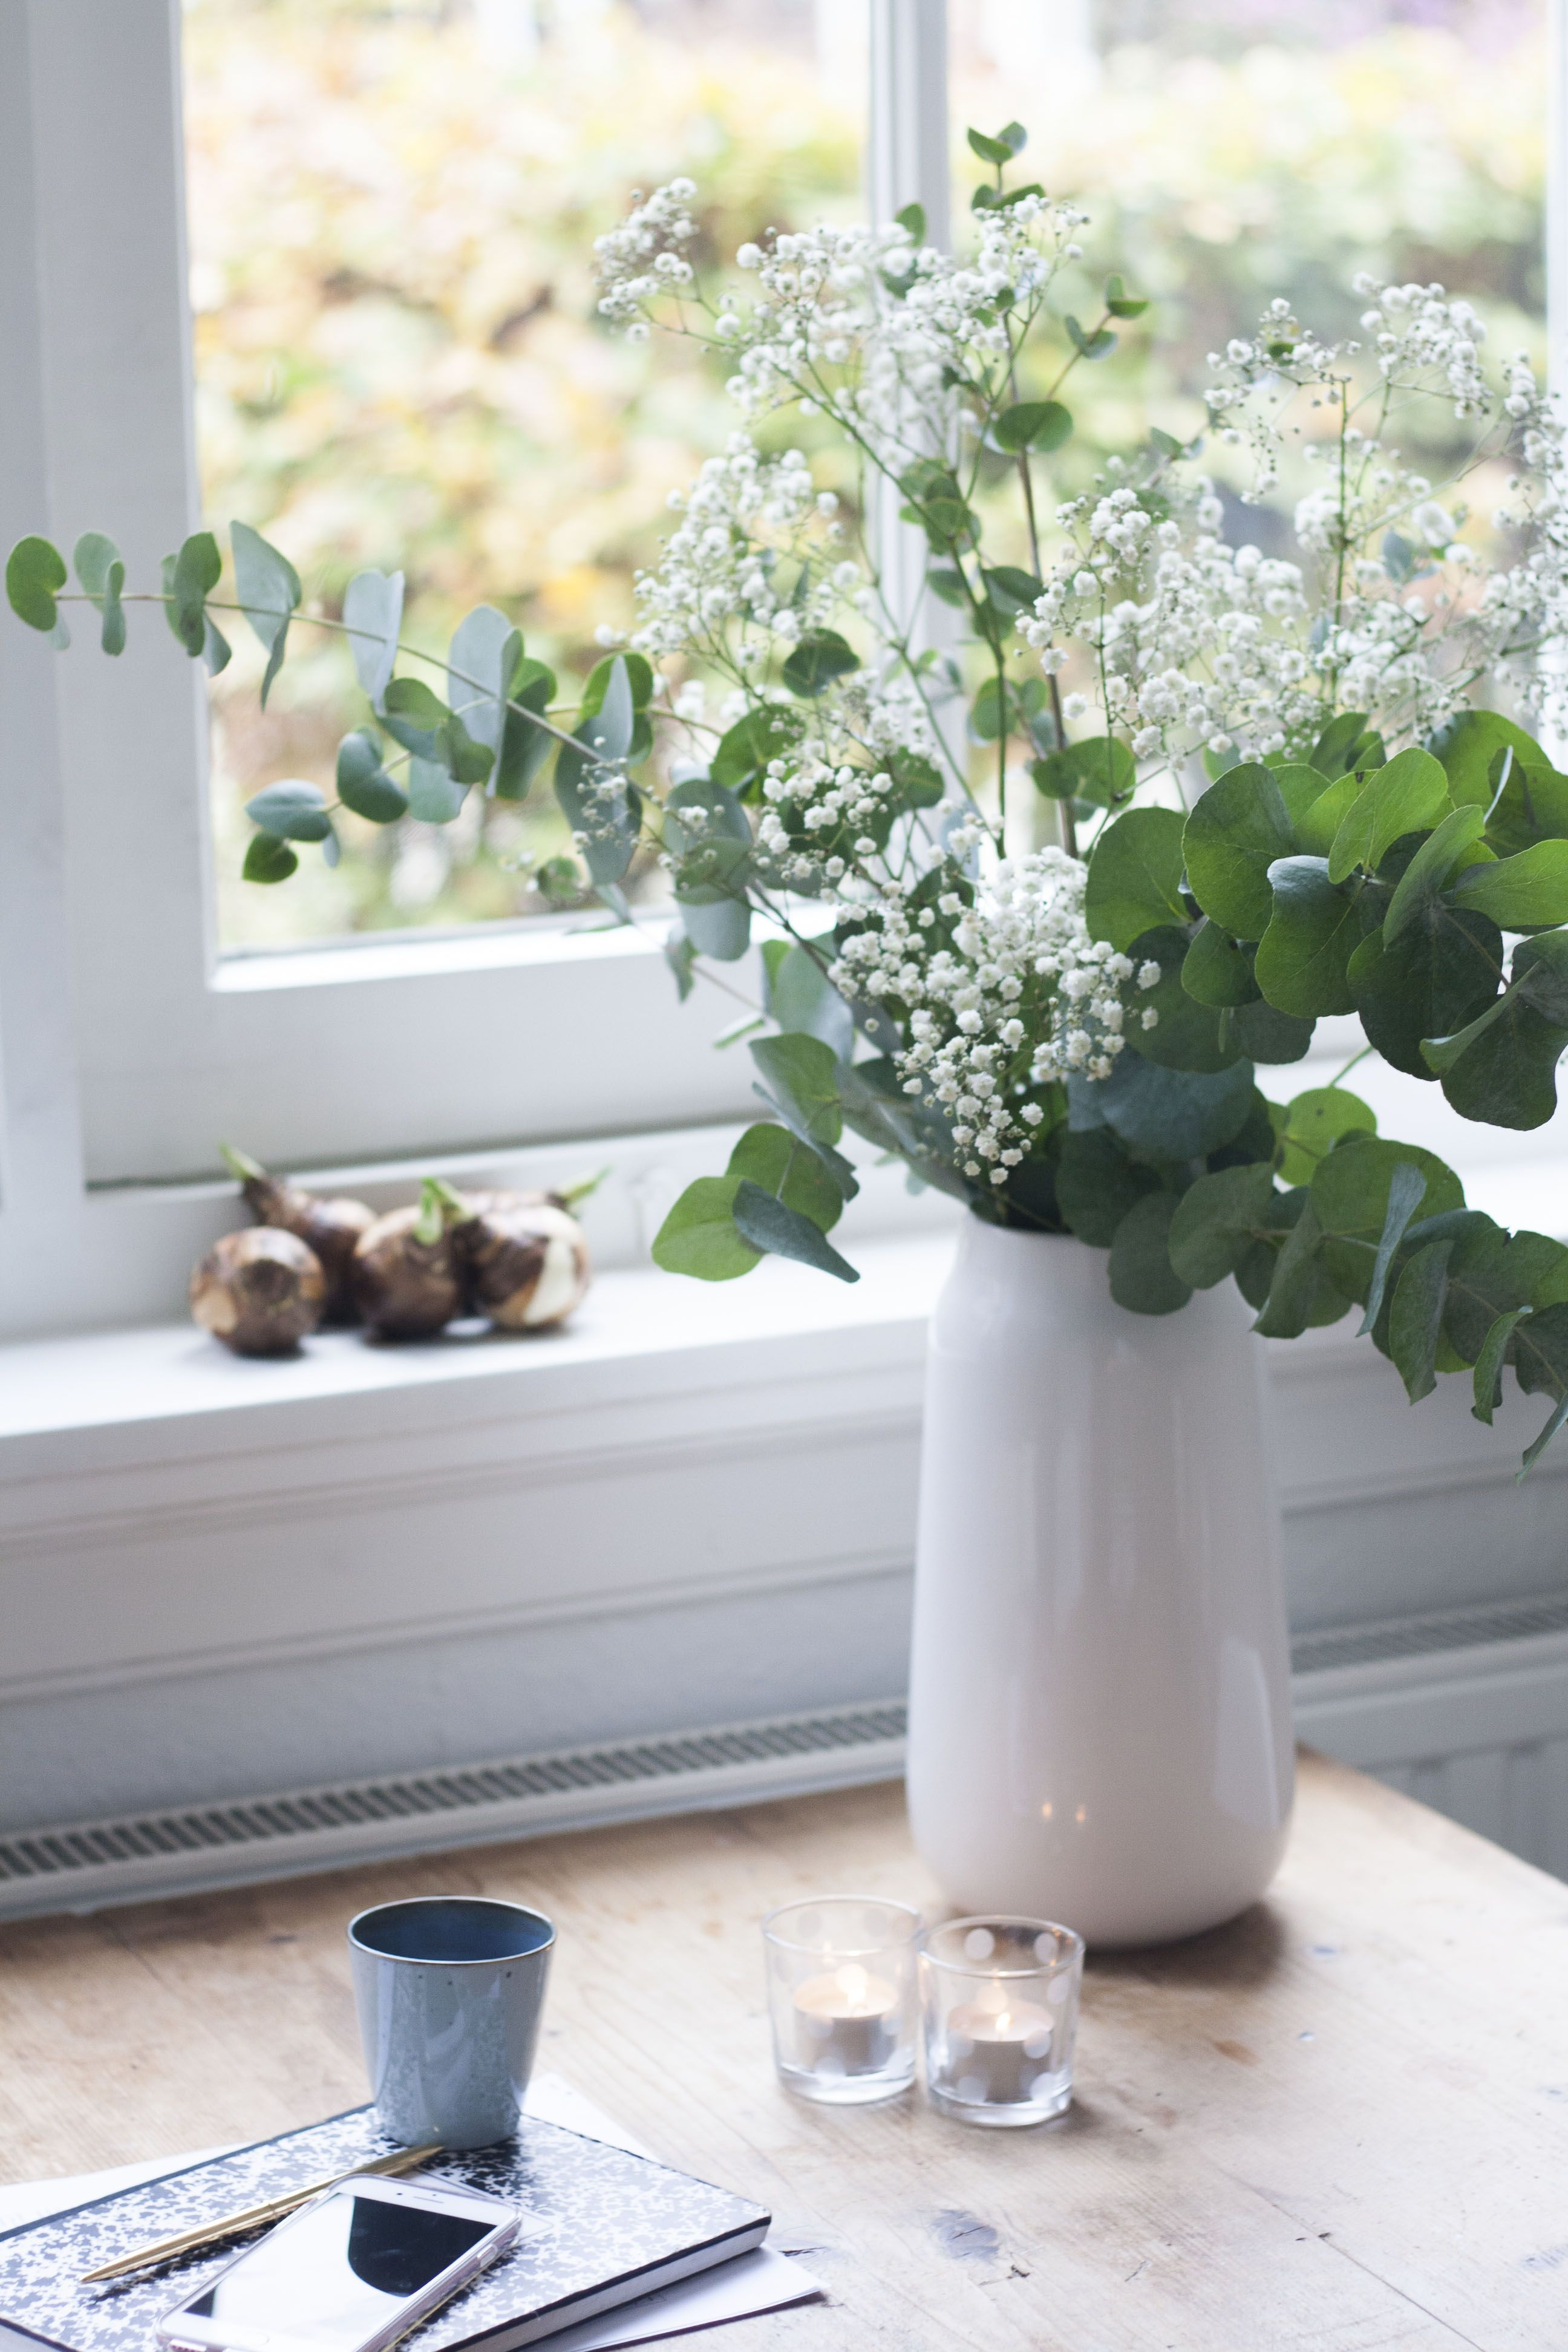 Decorative eucalyptus at home, did anyone grow or your friends What is the care and share the photo, if any Thank you